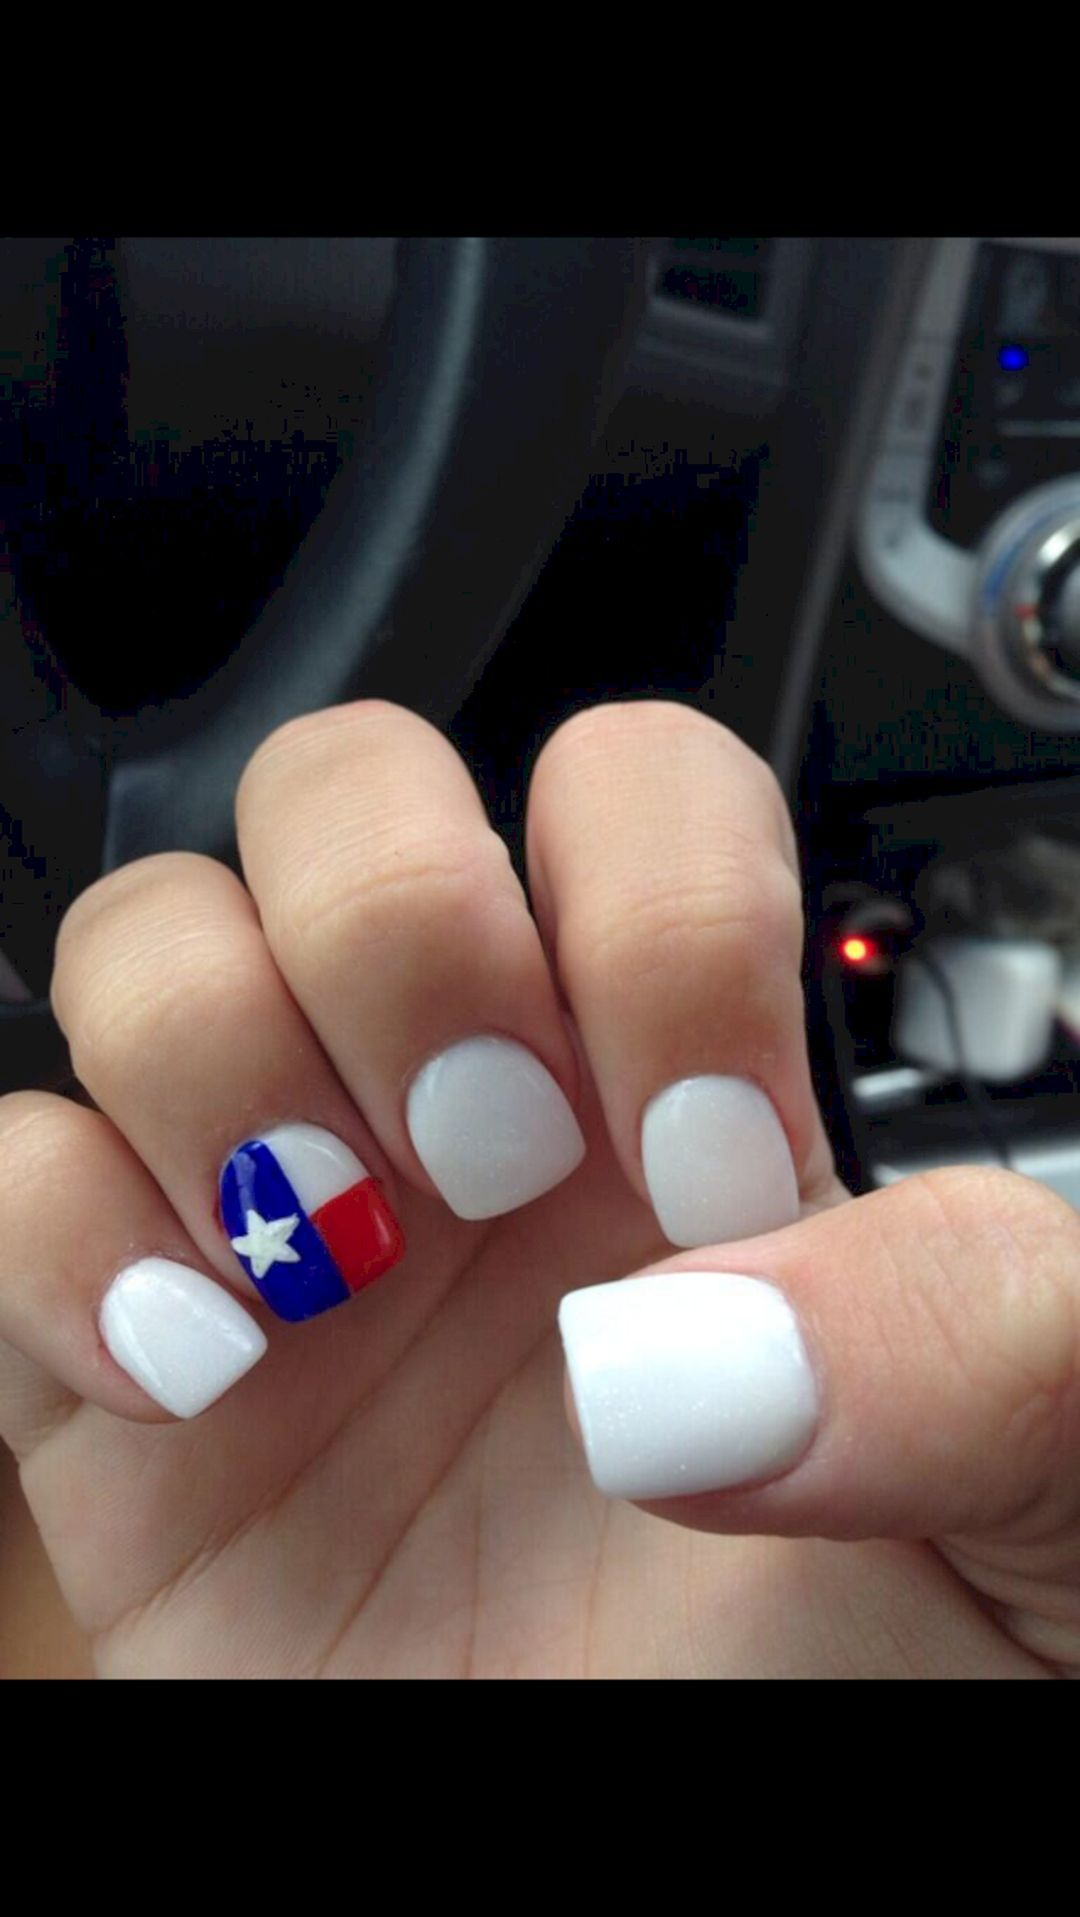 how to get a divorce with no money in texas